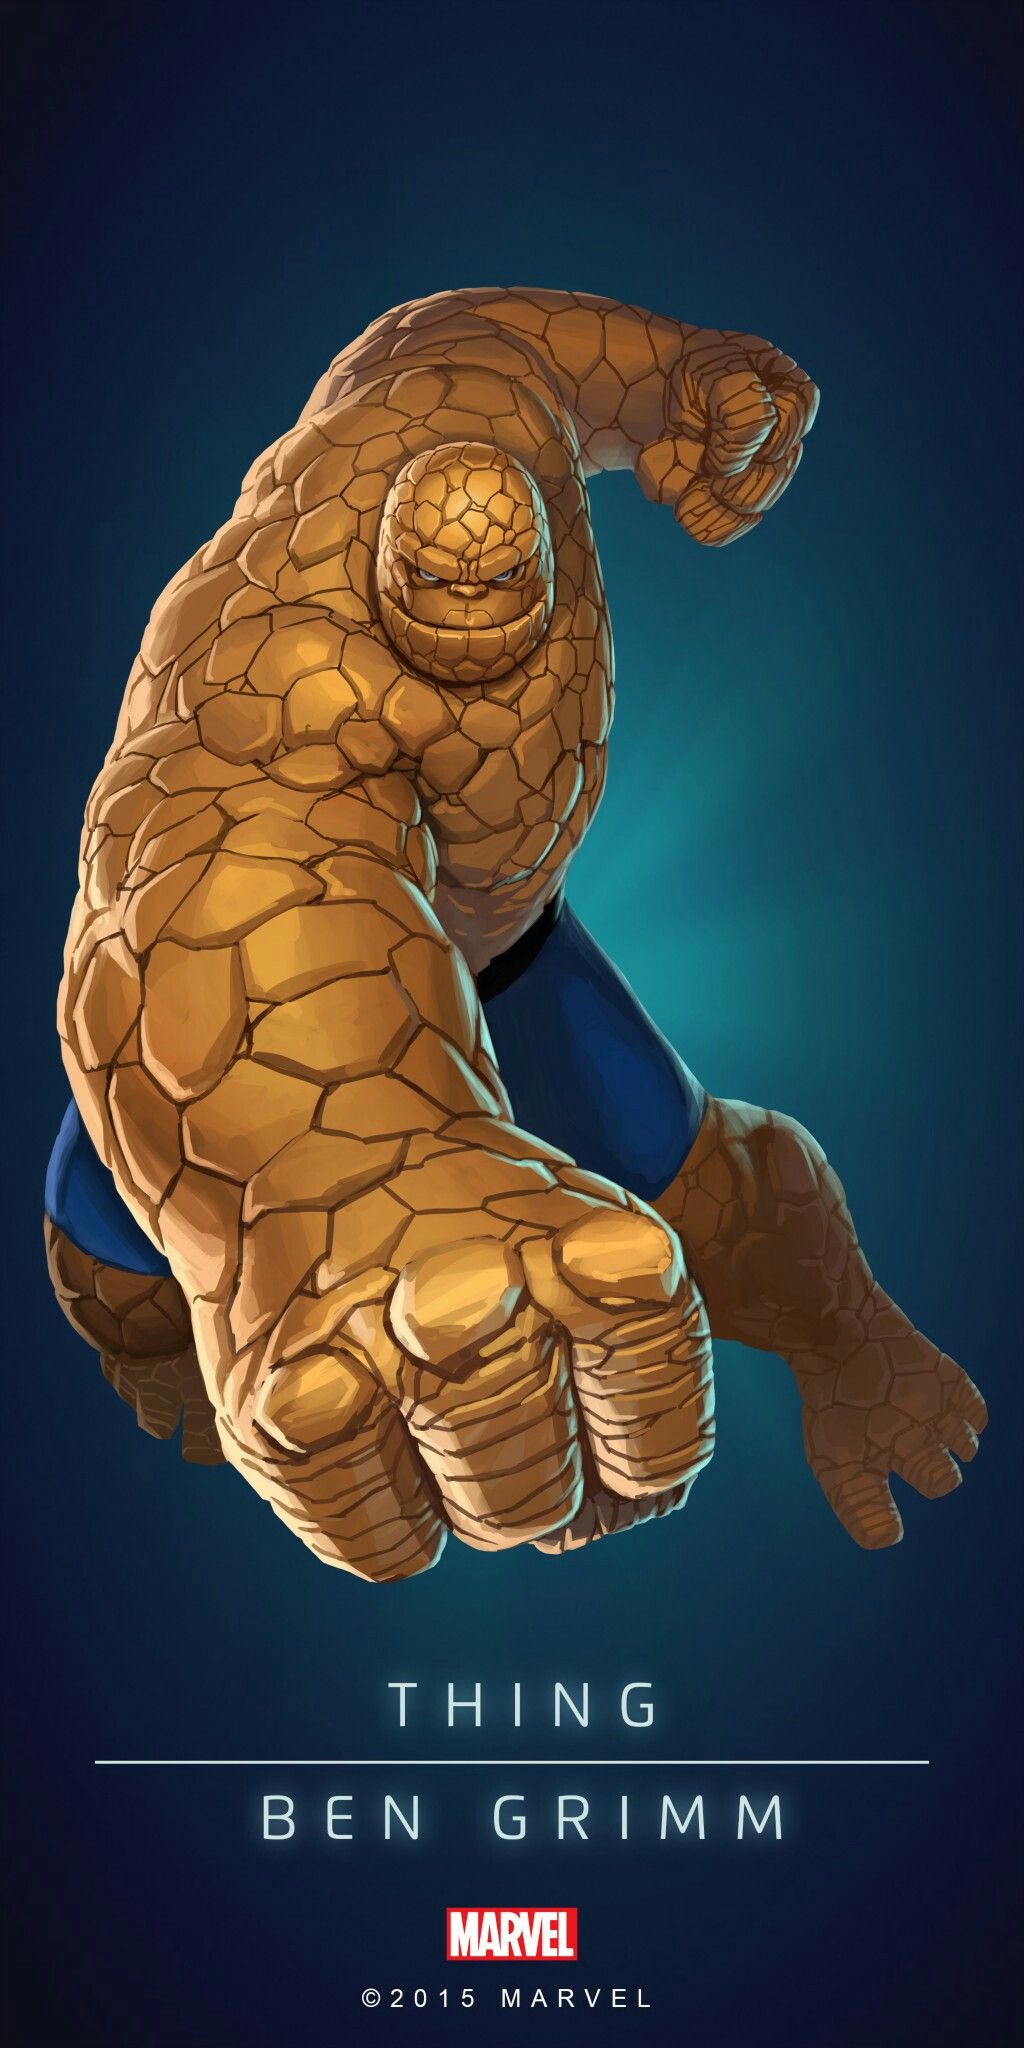 Fantastic Four 4 The Thing Ben Grimm